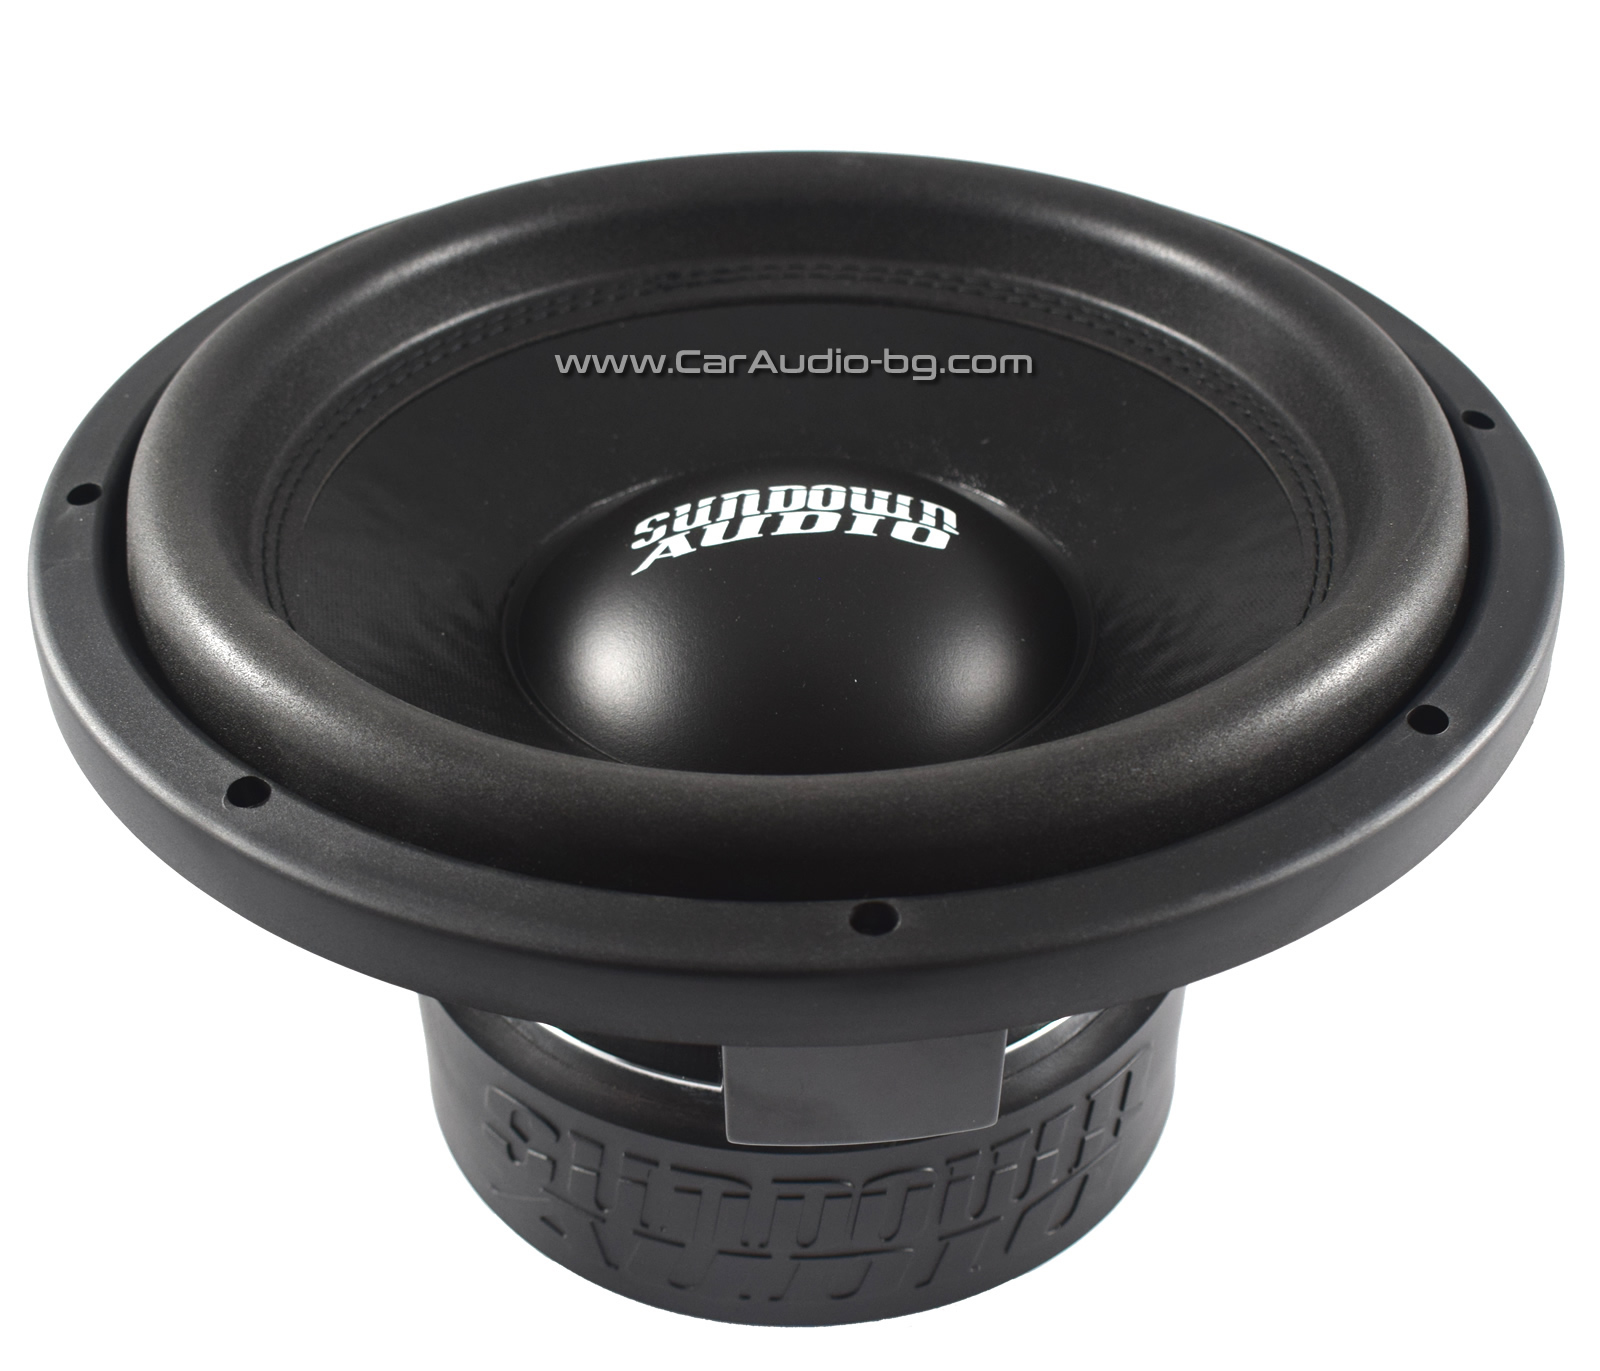 Sundown Audio SA12 D2